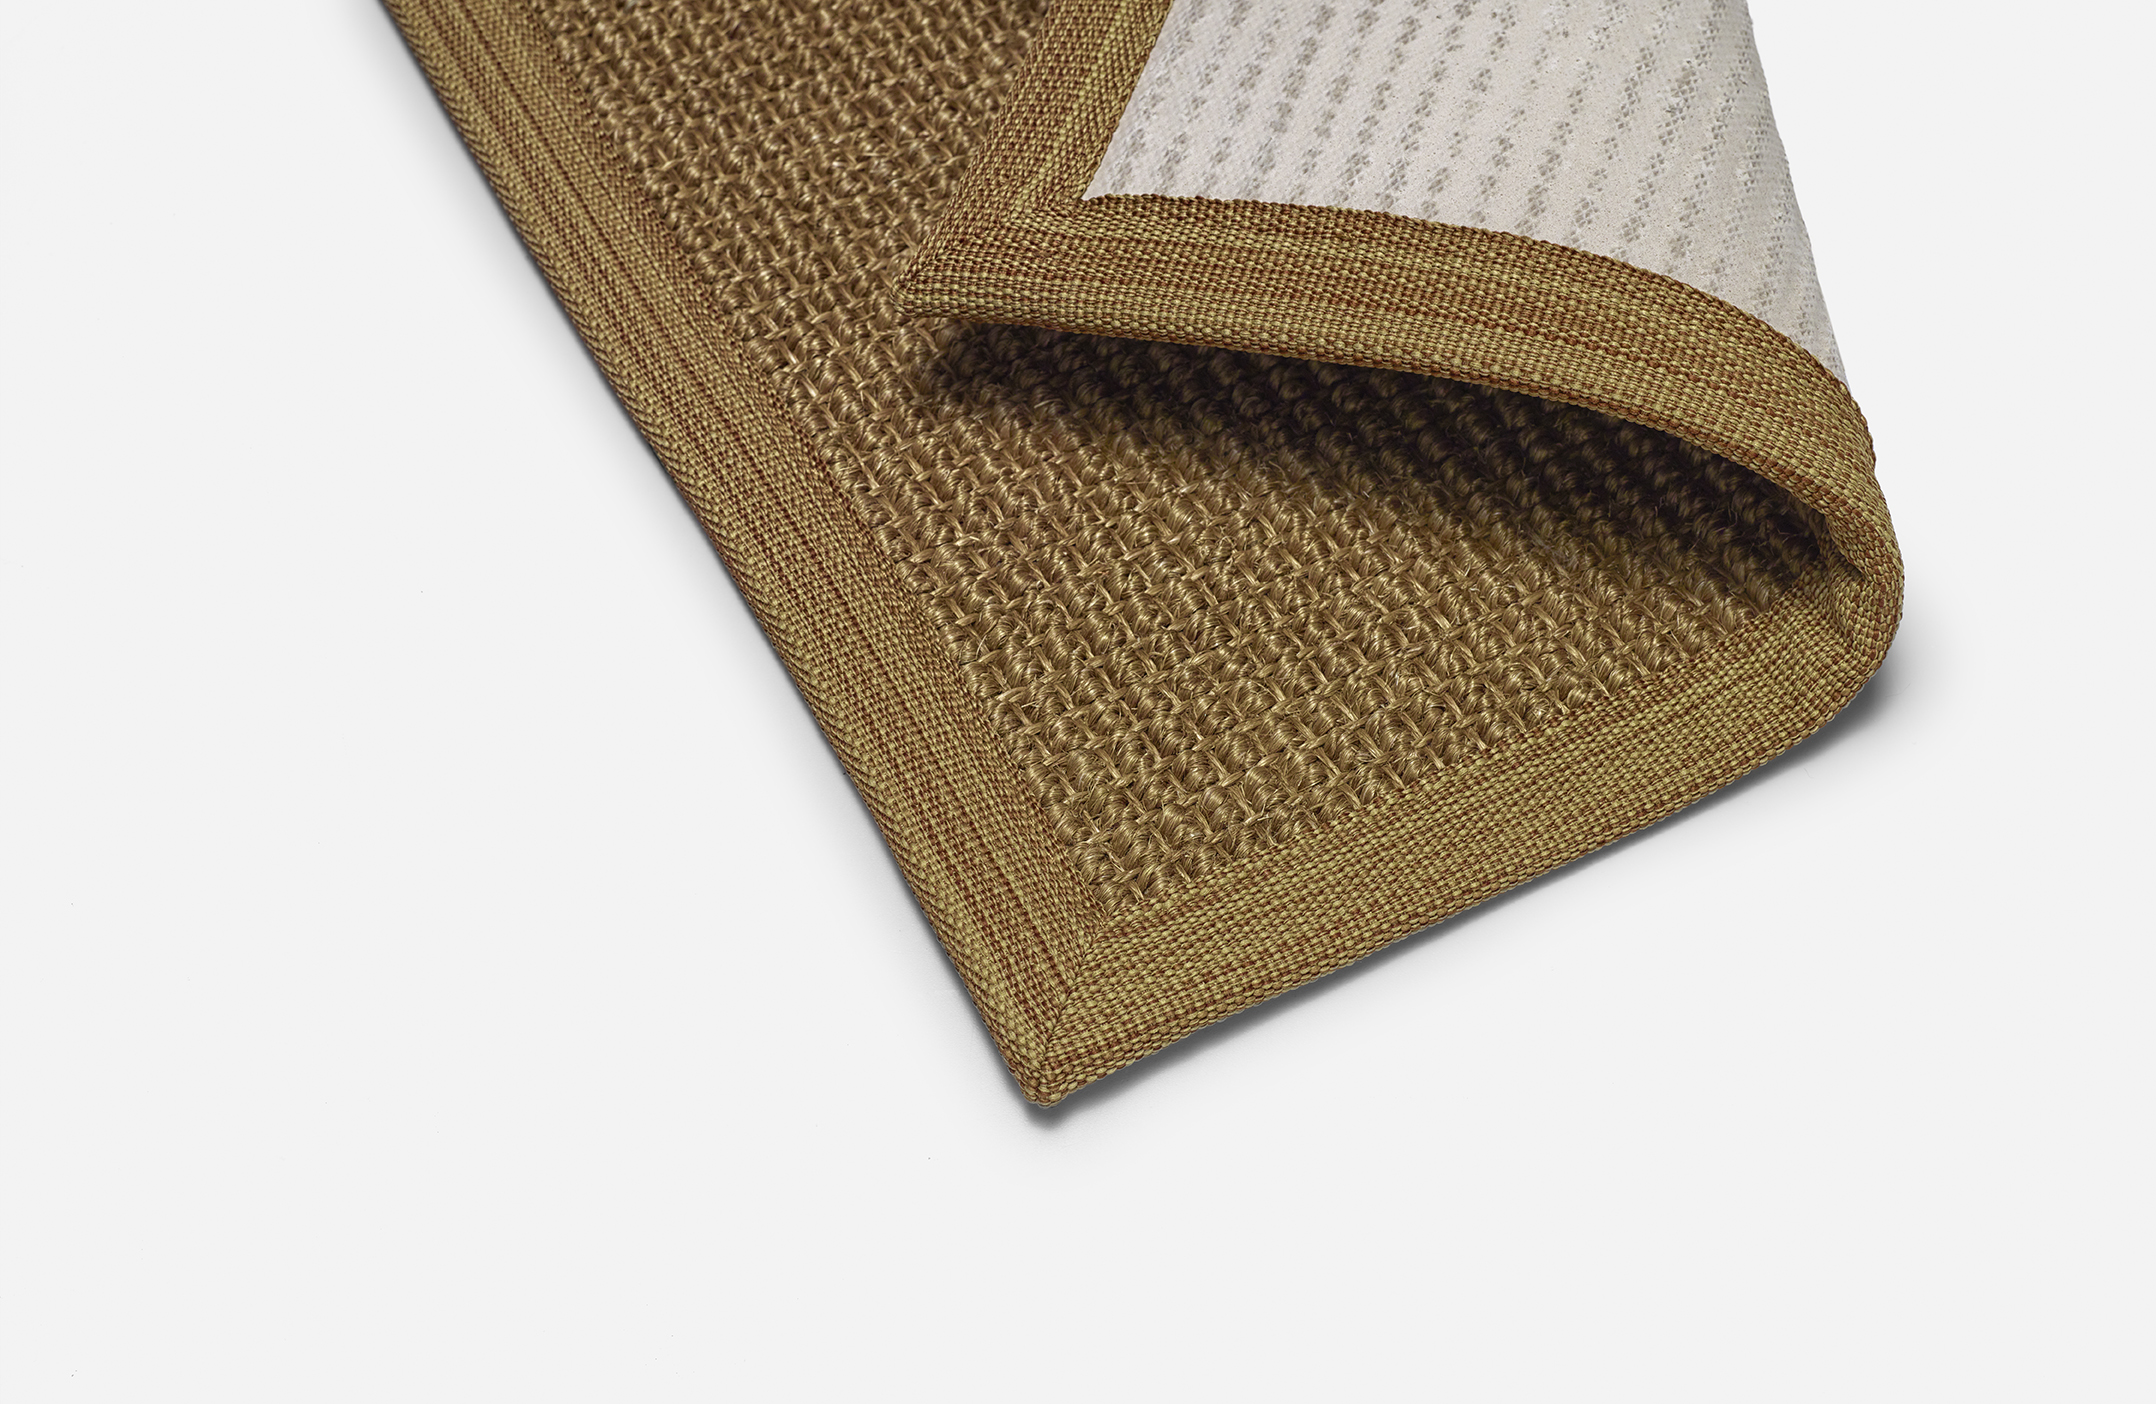 Bay  Sisal Terracotte 2247 with Bay 006